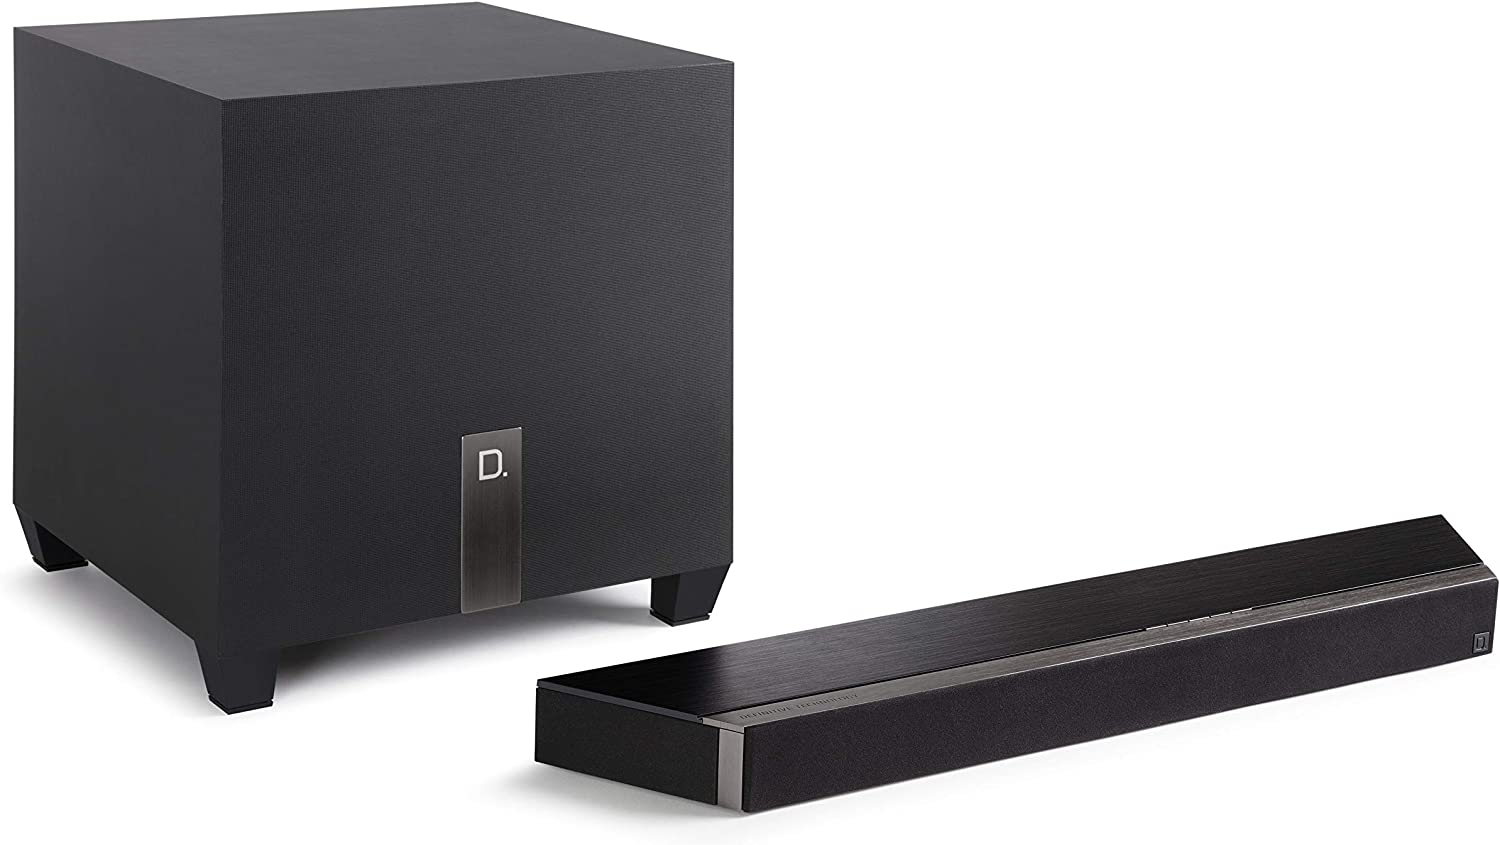 Definitive Technology Studio 3D Mini Sound Bar with 6 Speakers and an 8